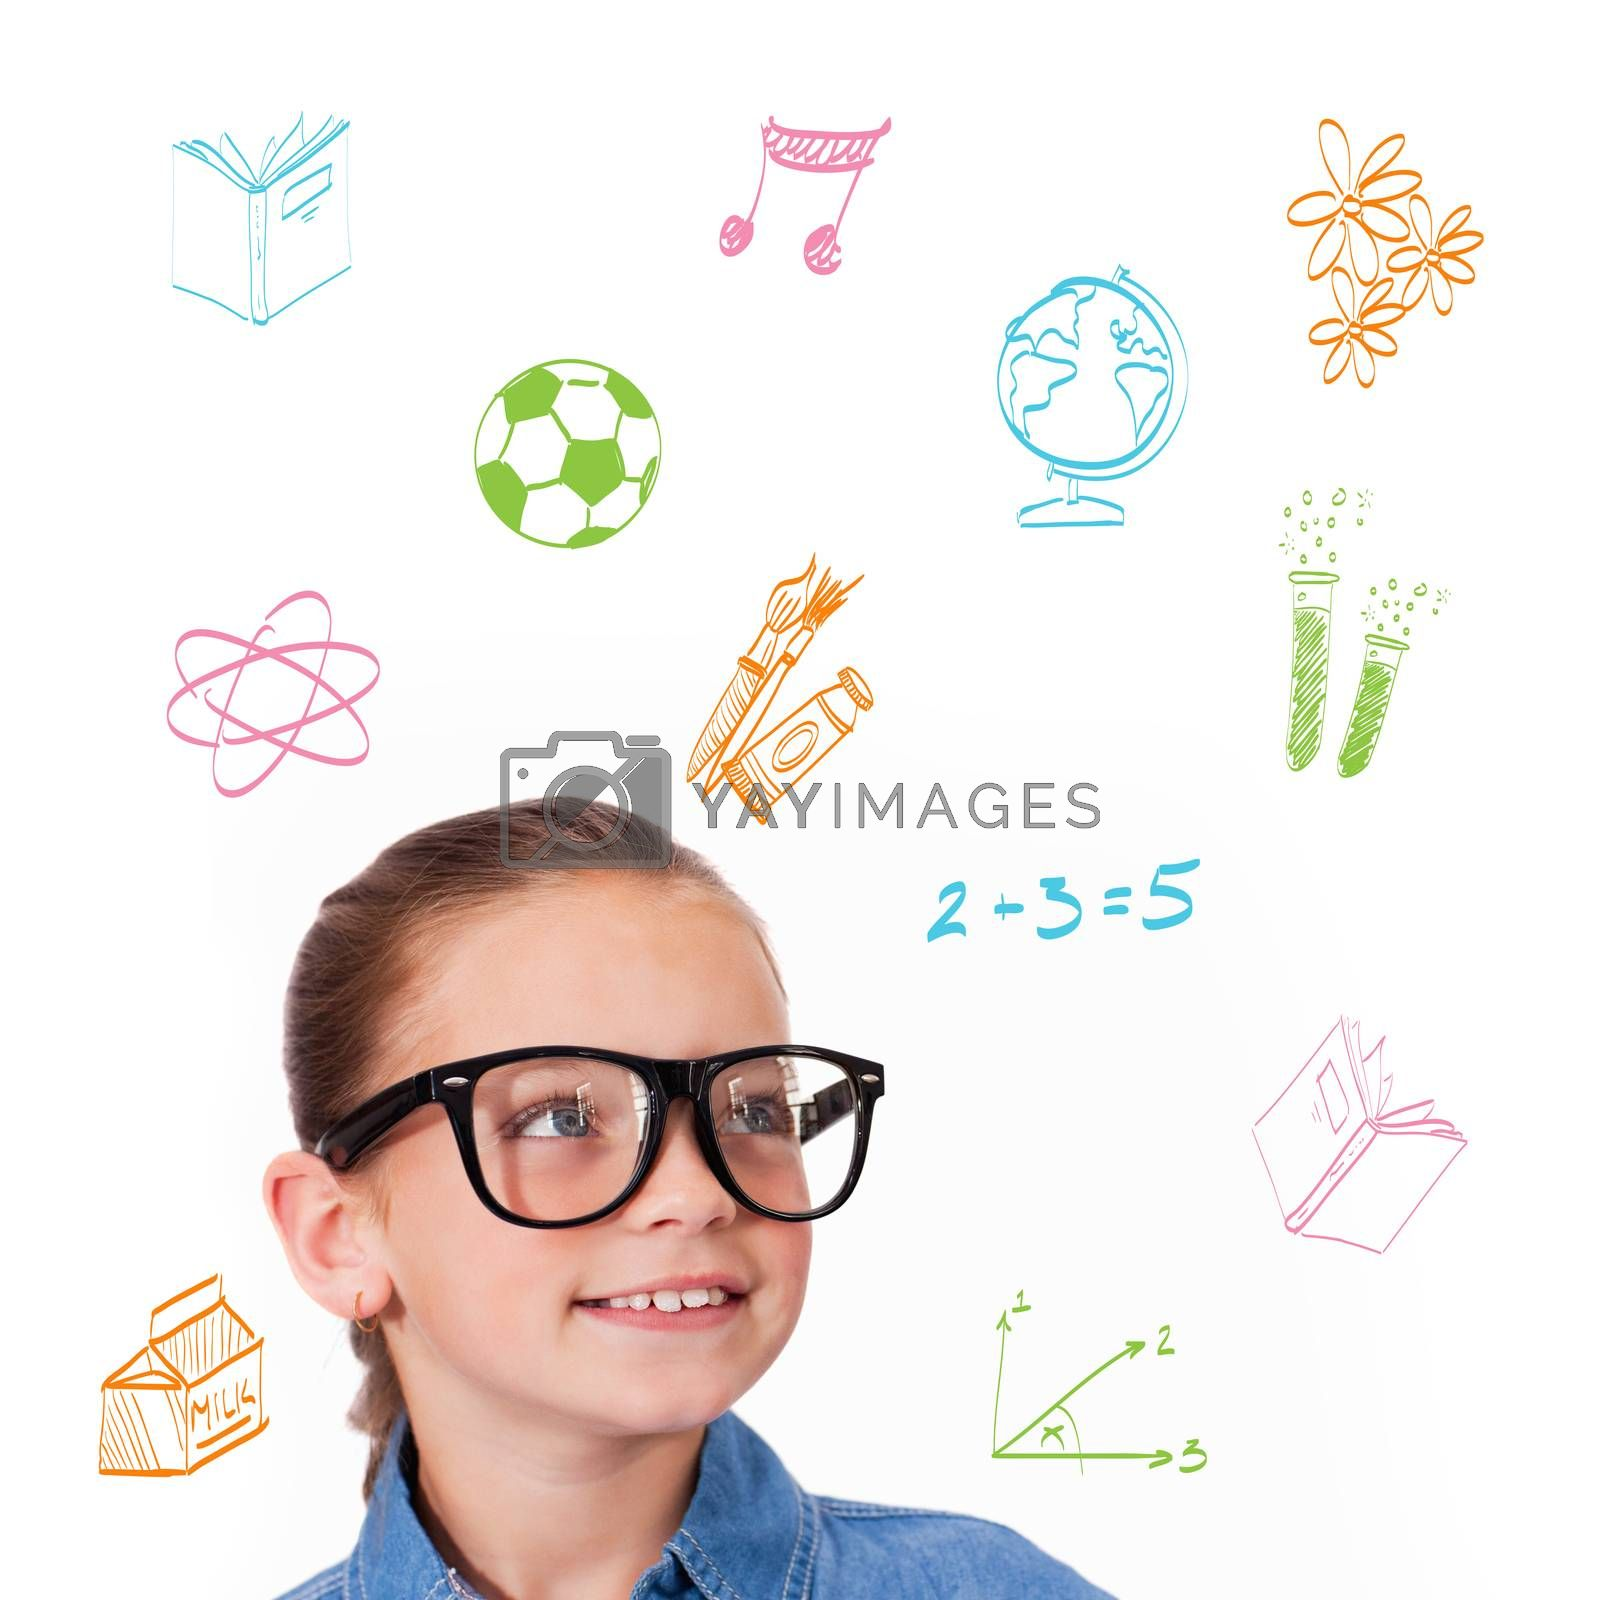 Cute pupil smiling against school subjects doodles